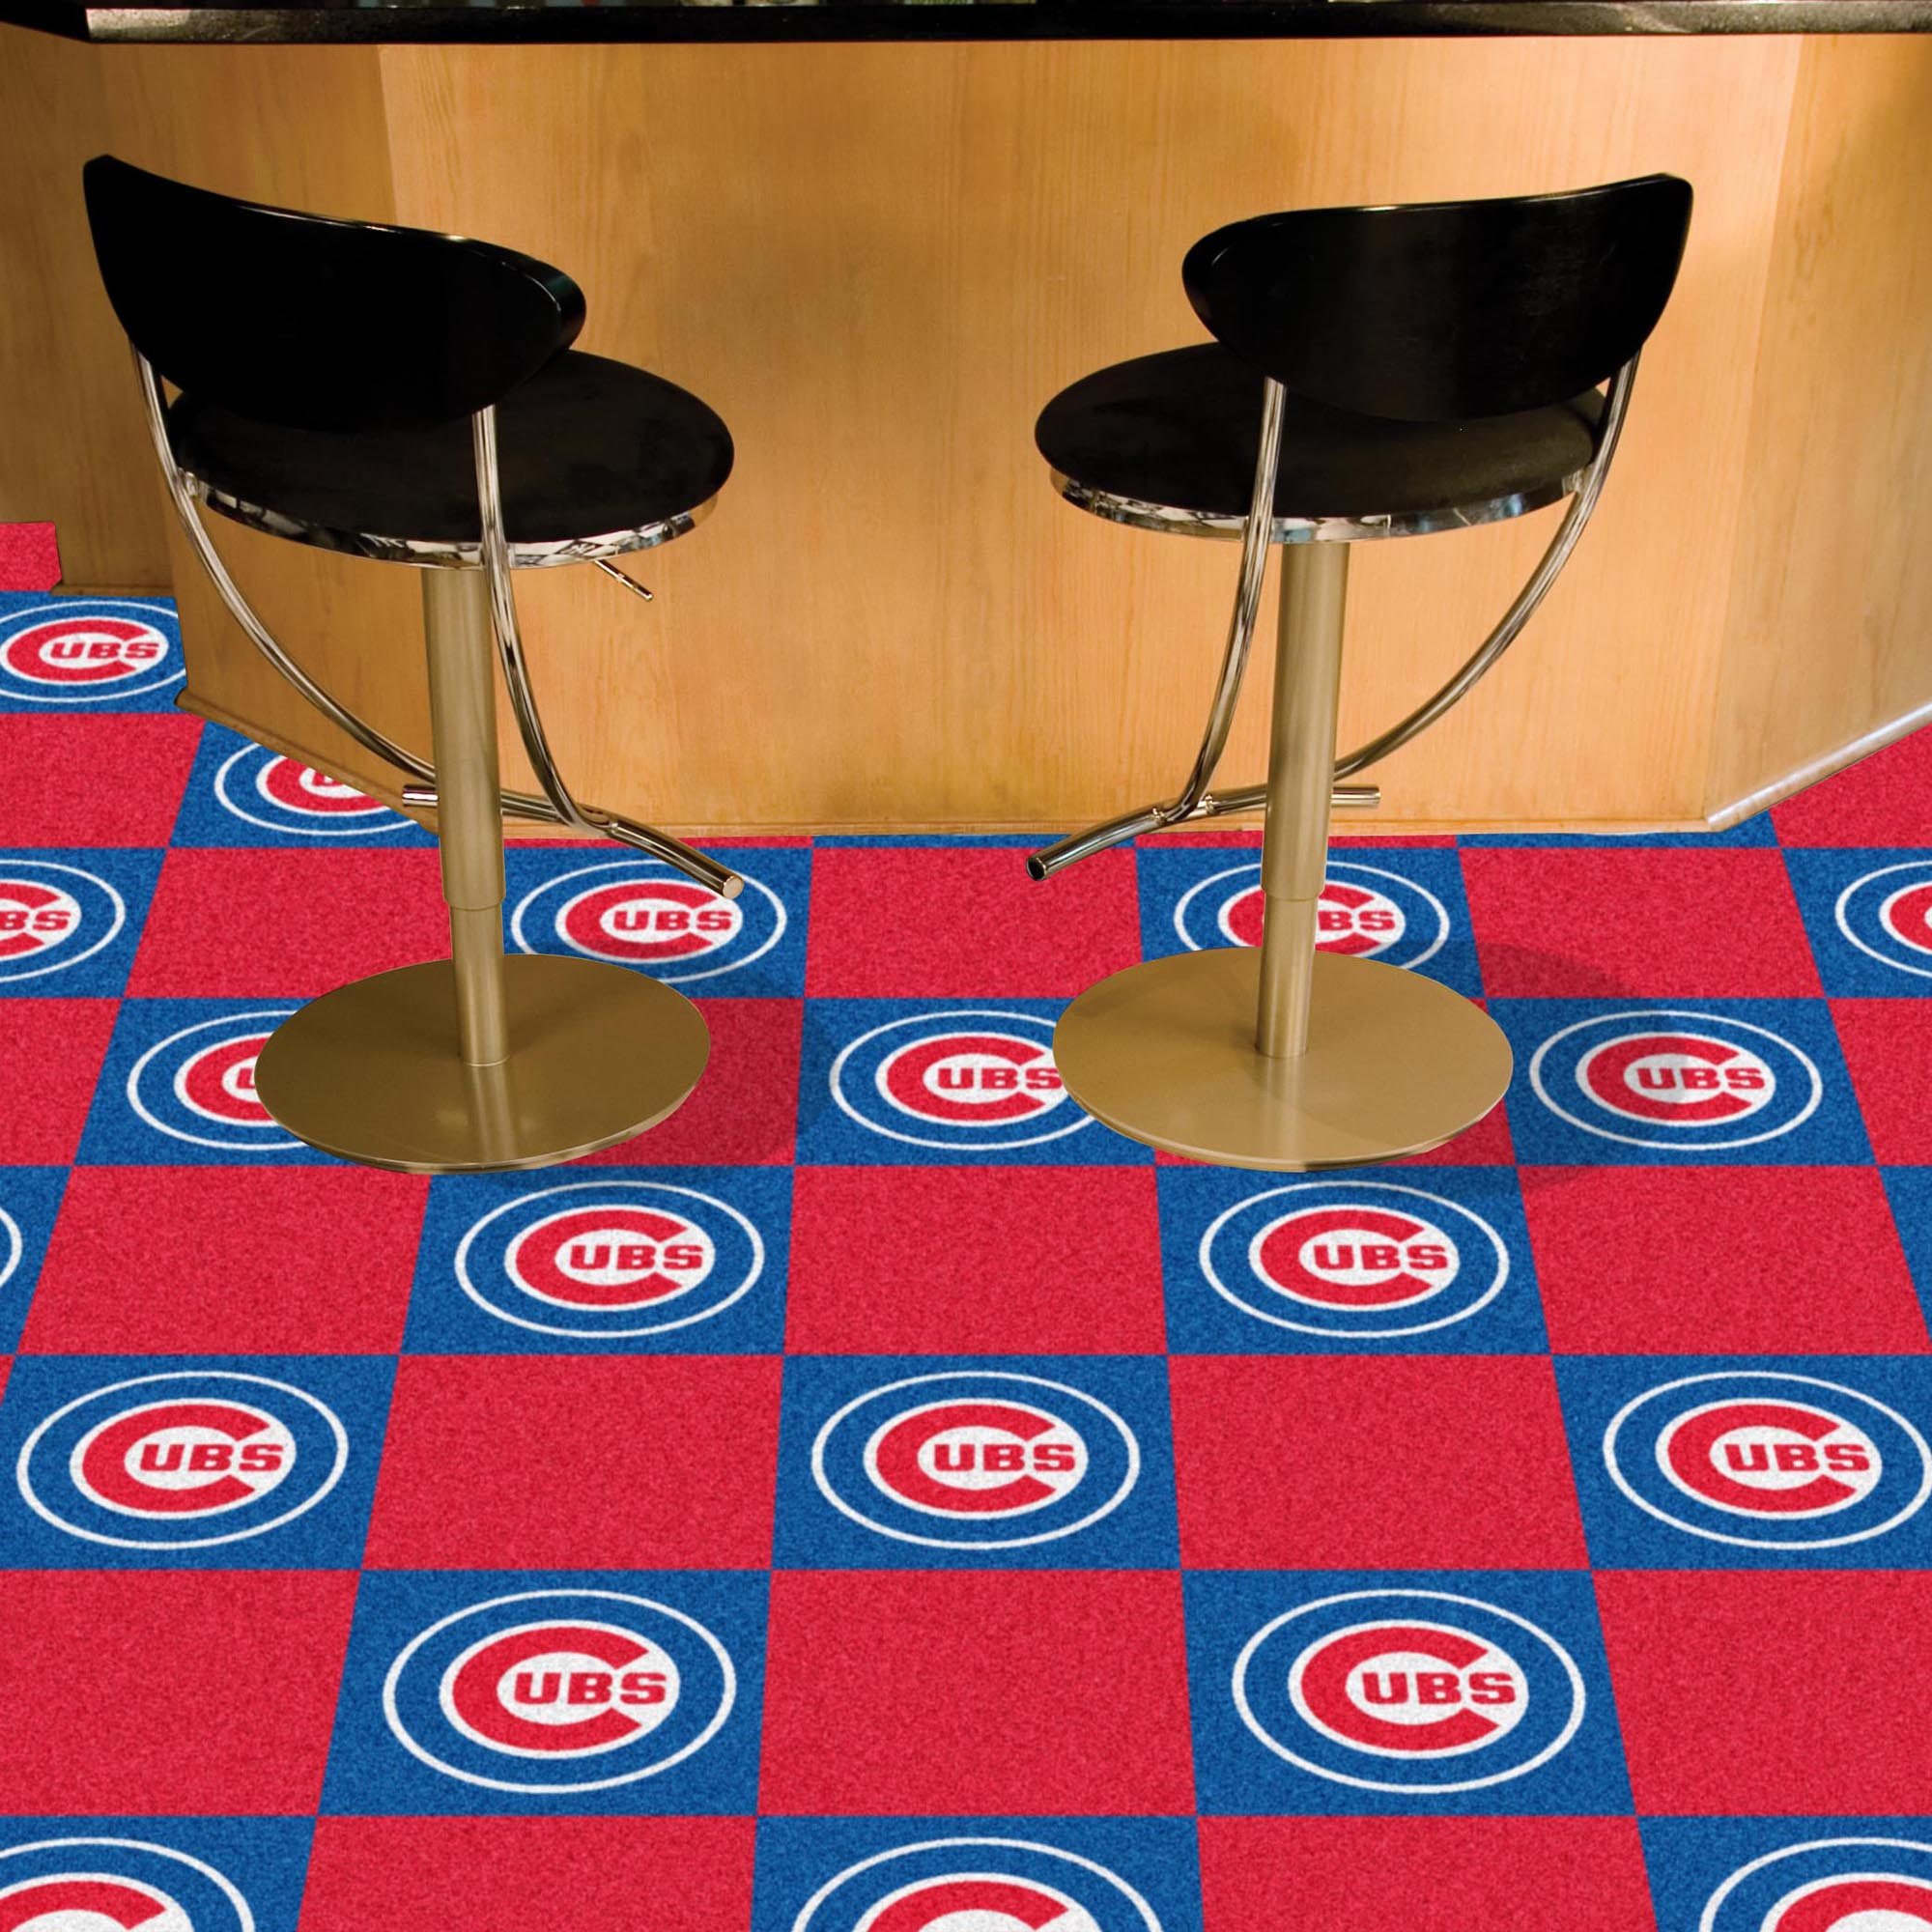 Chicago Cubs Carpet Tiles 18x18 in.